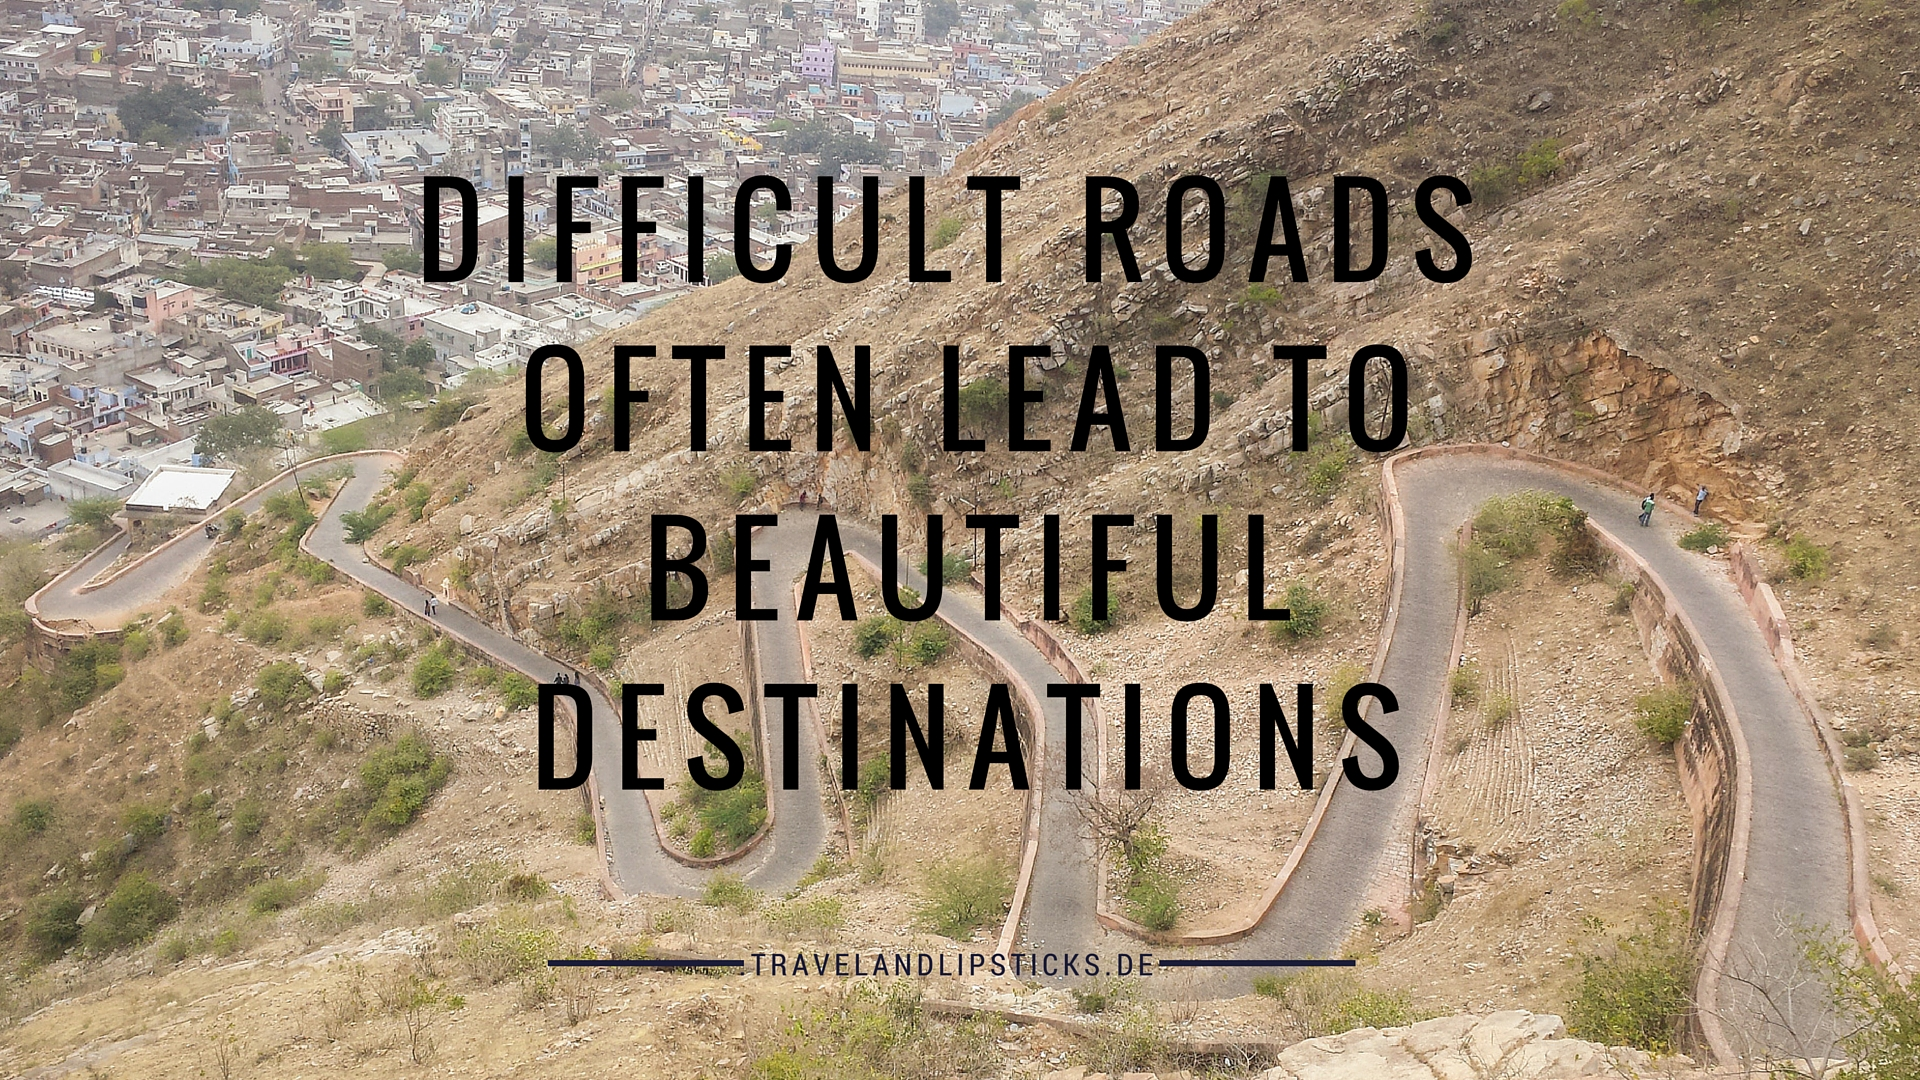 Quote Difficult Roads often lead to beautiful destinations